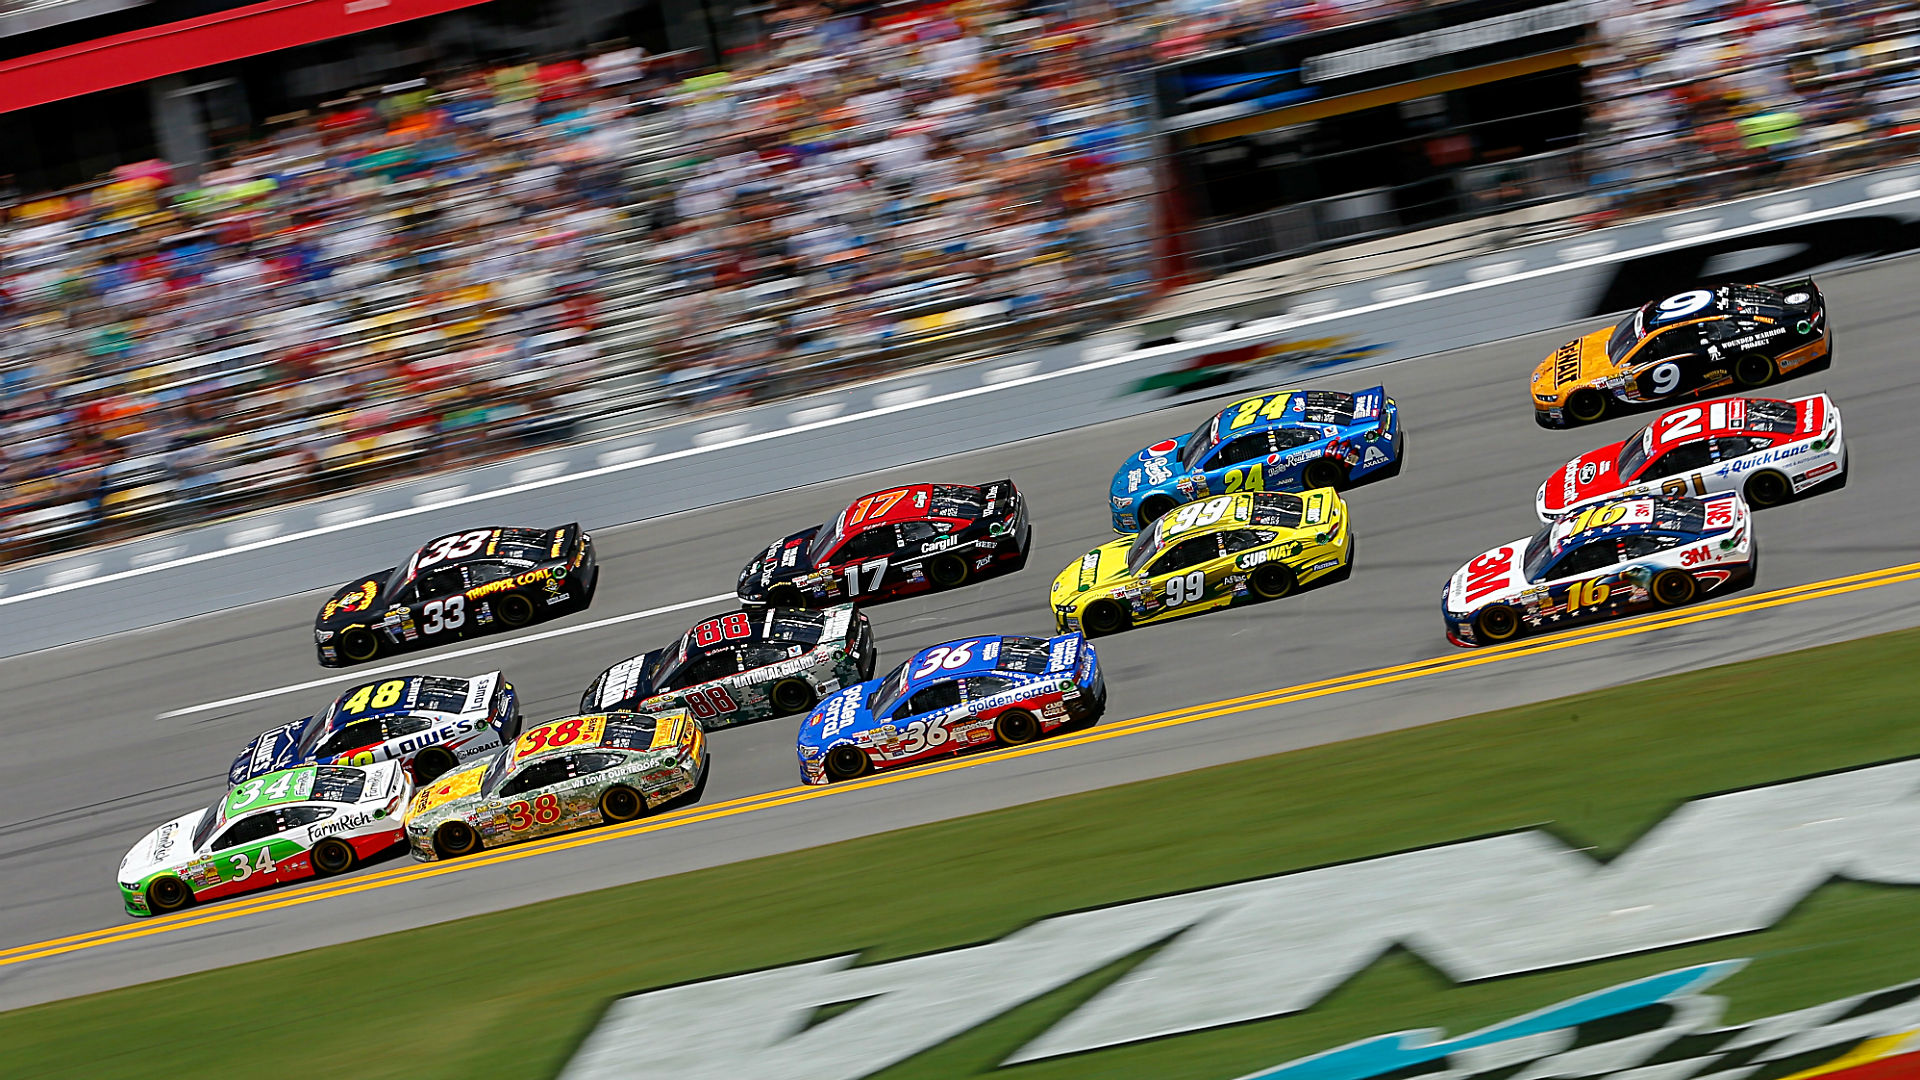 NASCAR at Daytona odds and driver ratings — Betting approach changes in plate races